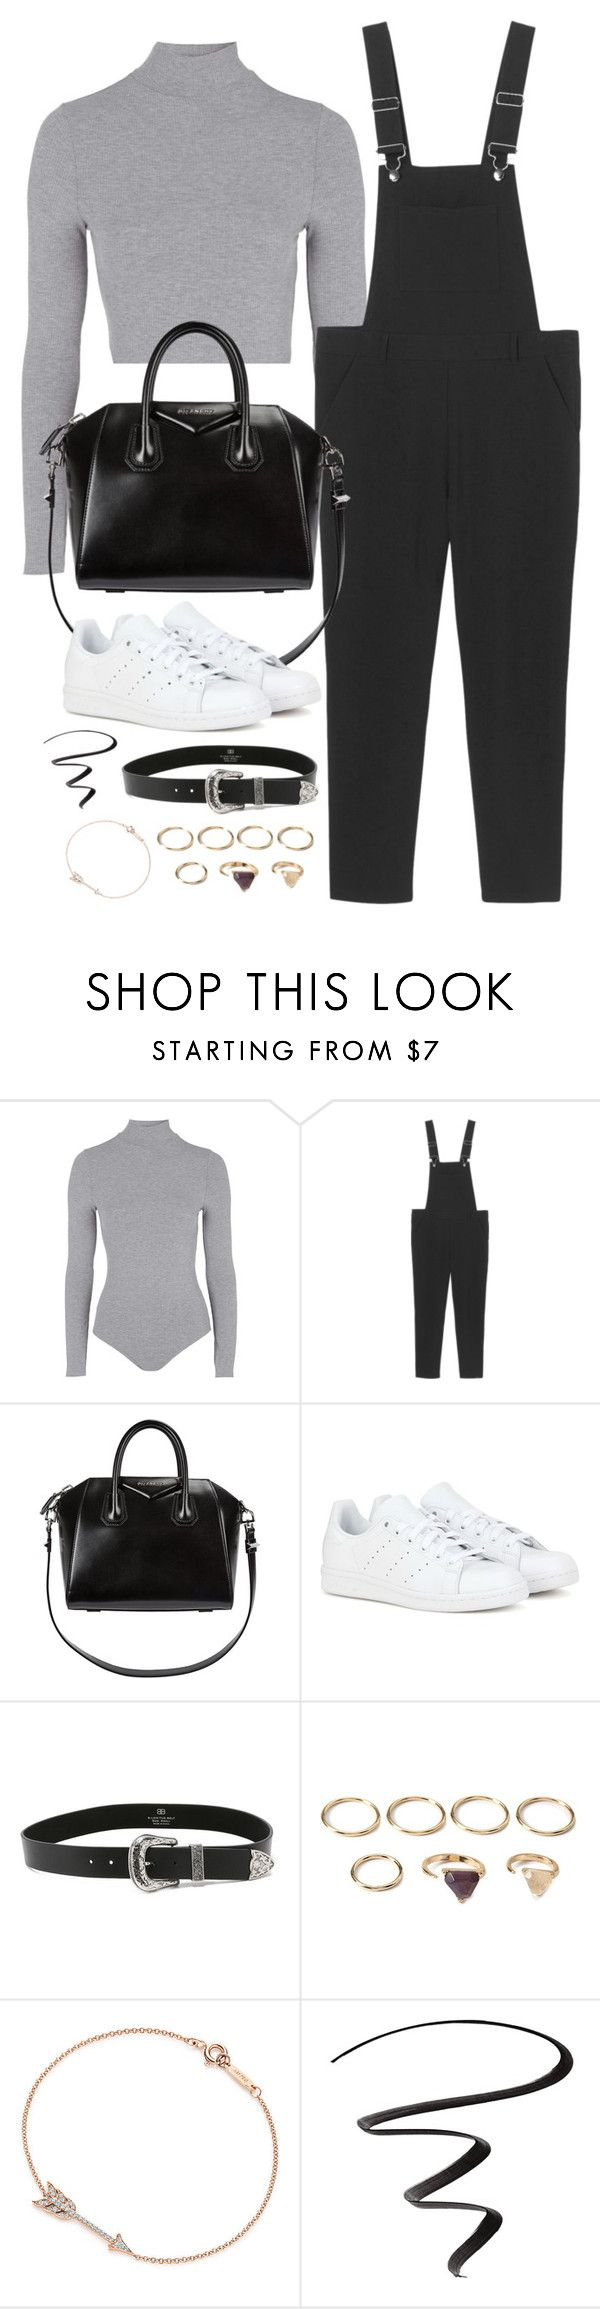 """""""Untitled#4388"""" by fashionnfacts ❤ liked on Polyvore featuring Topshop, Monki, Givenchy, adidas, B-Low the Belt, Forever 21, Tiffany & Co. and L'Oréal Paris"""